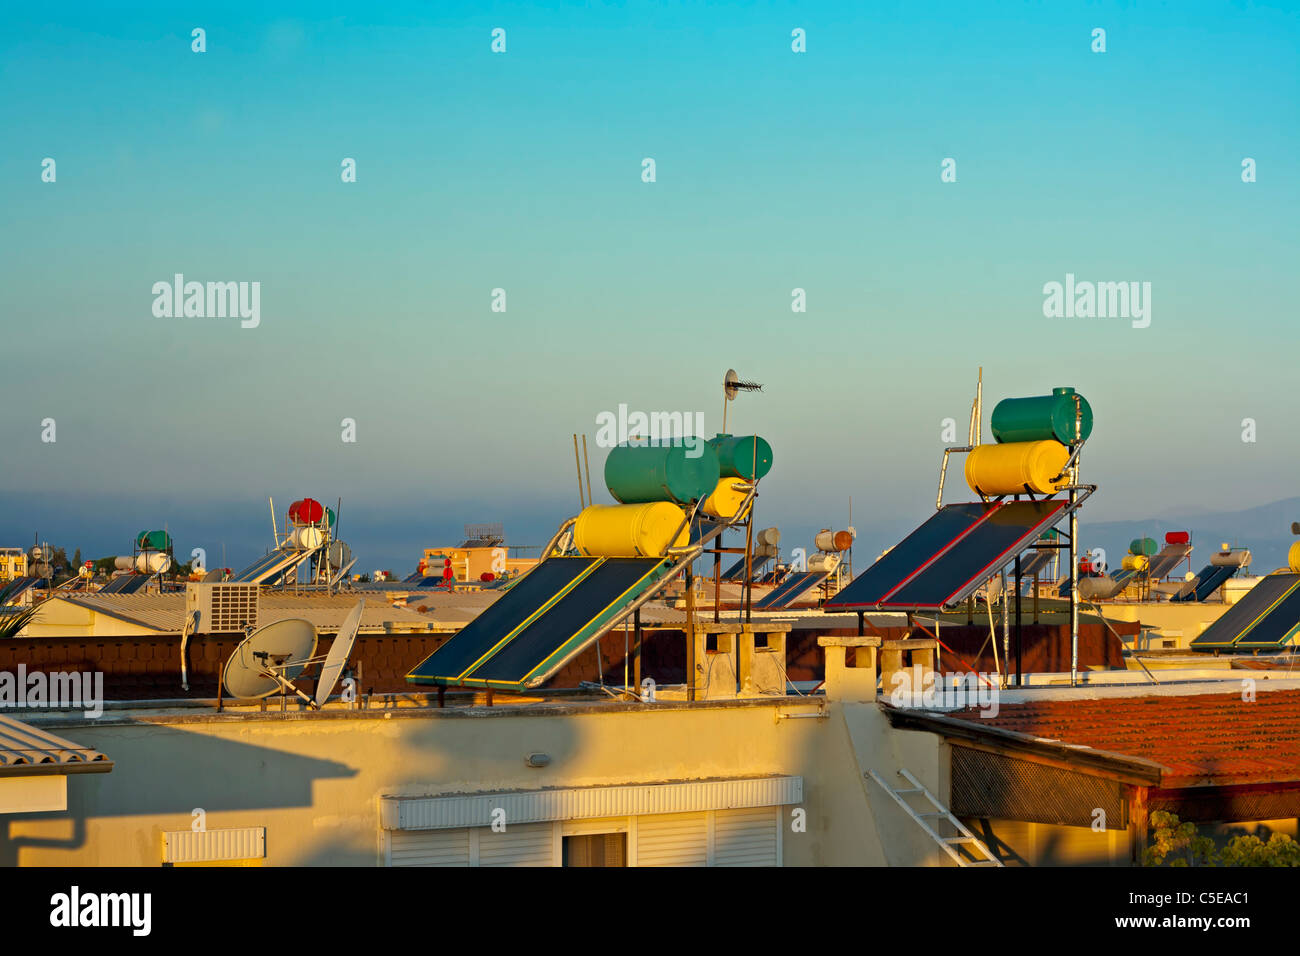 Rooftop hot water solar heating systems Stock Photo: 37809521 - Alamy